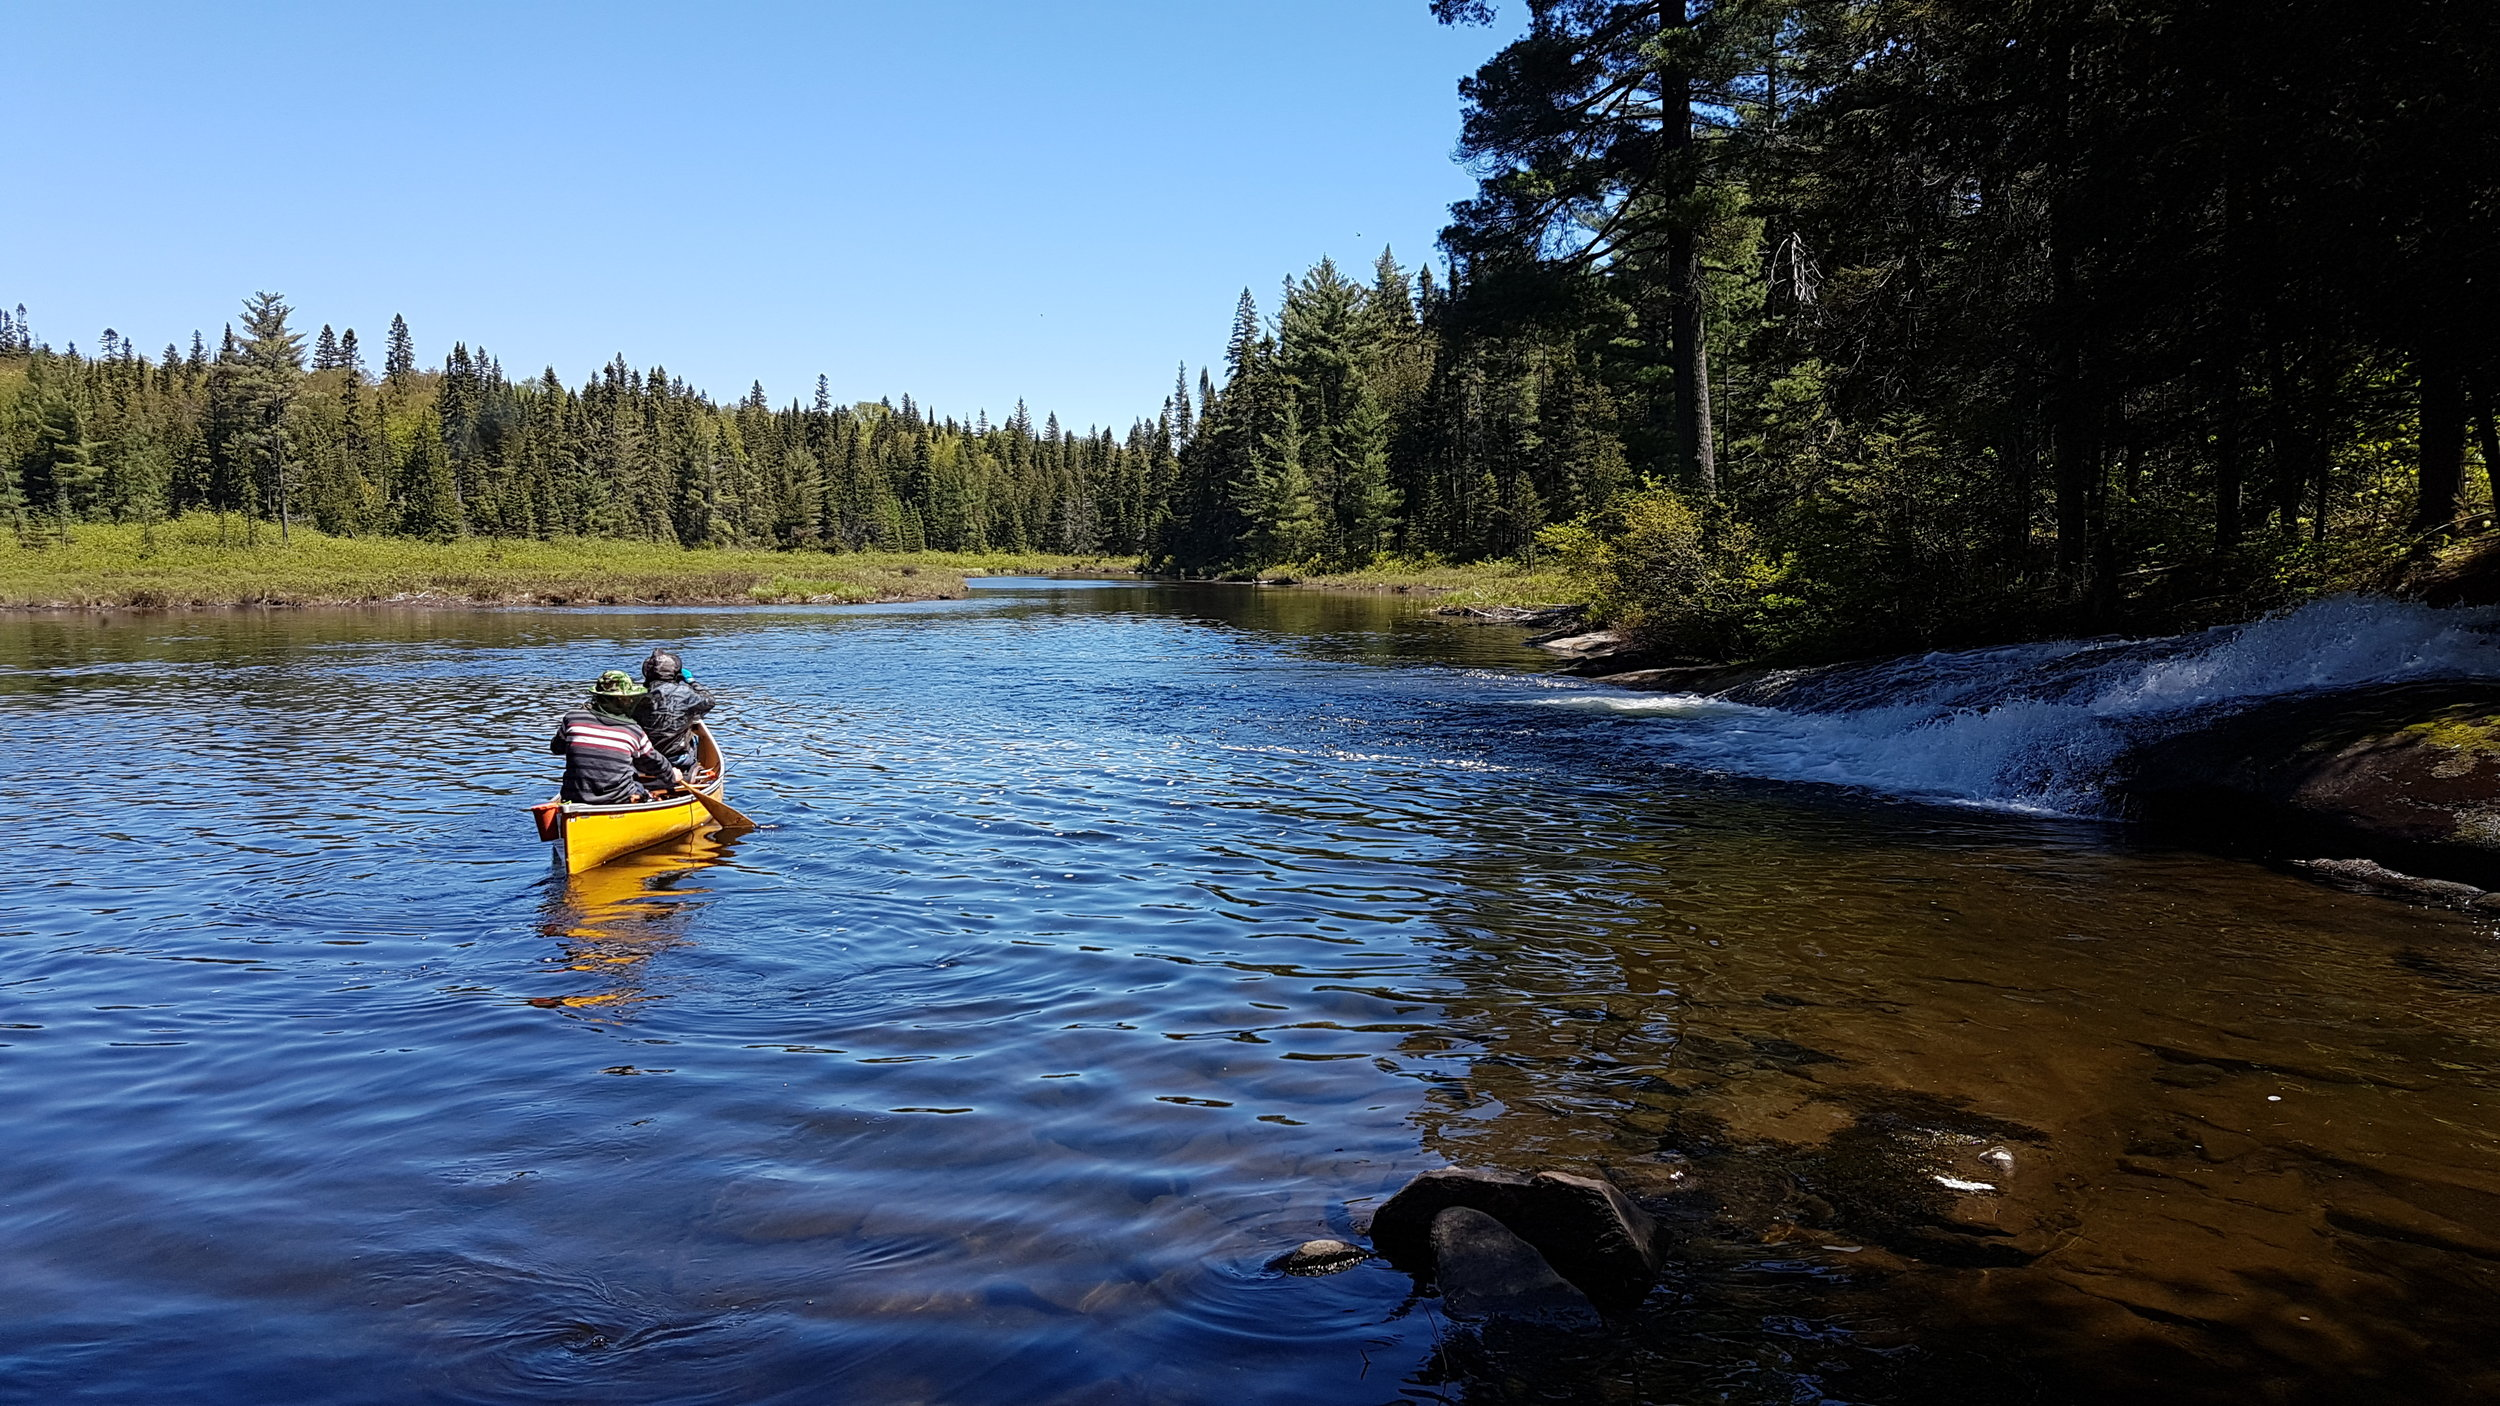 On the Petawawa River right after the portage from Daisy Lake